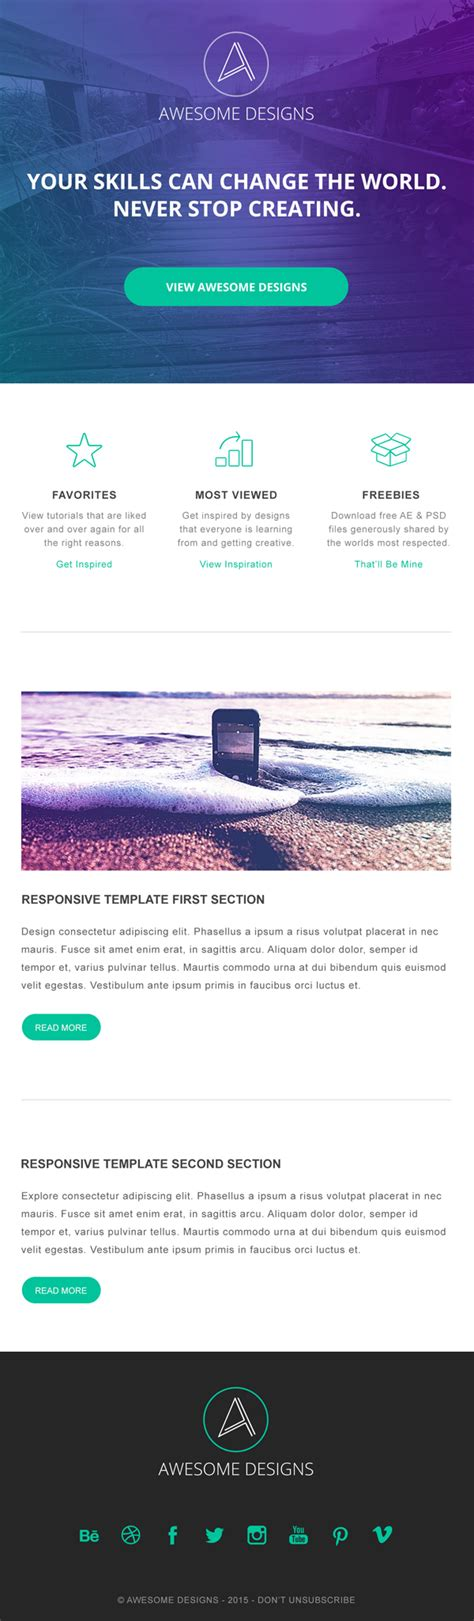 email template psd free freebies 25 new useful free vector and psd files